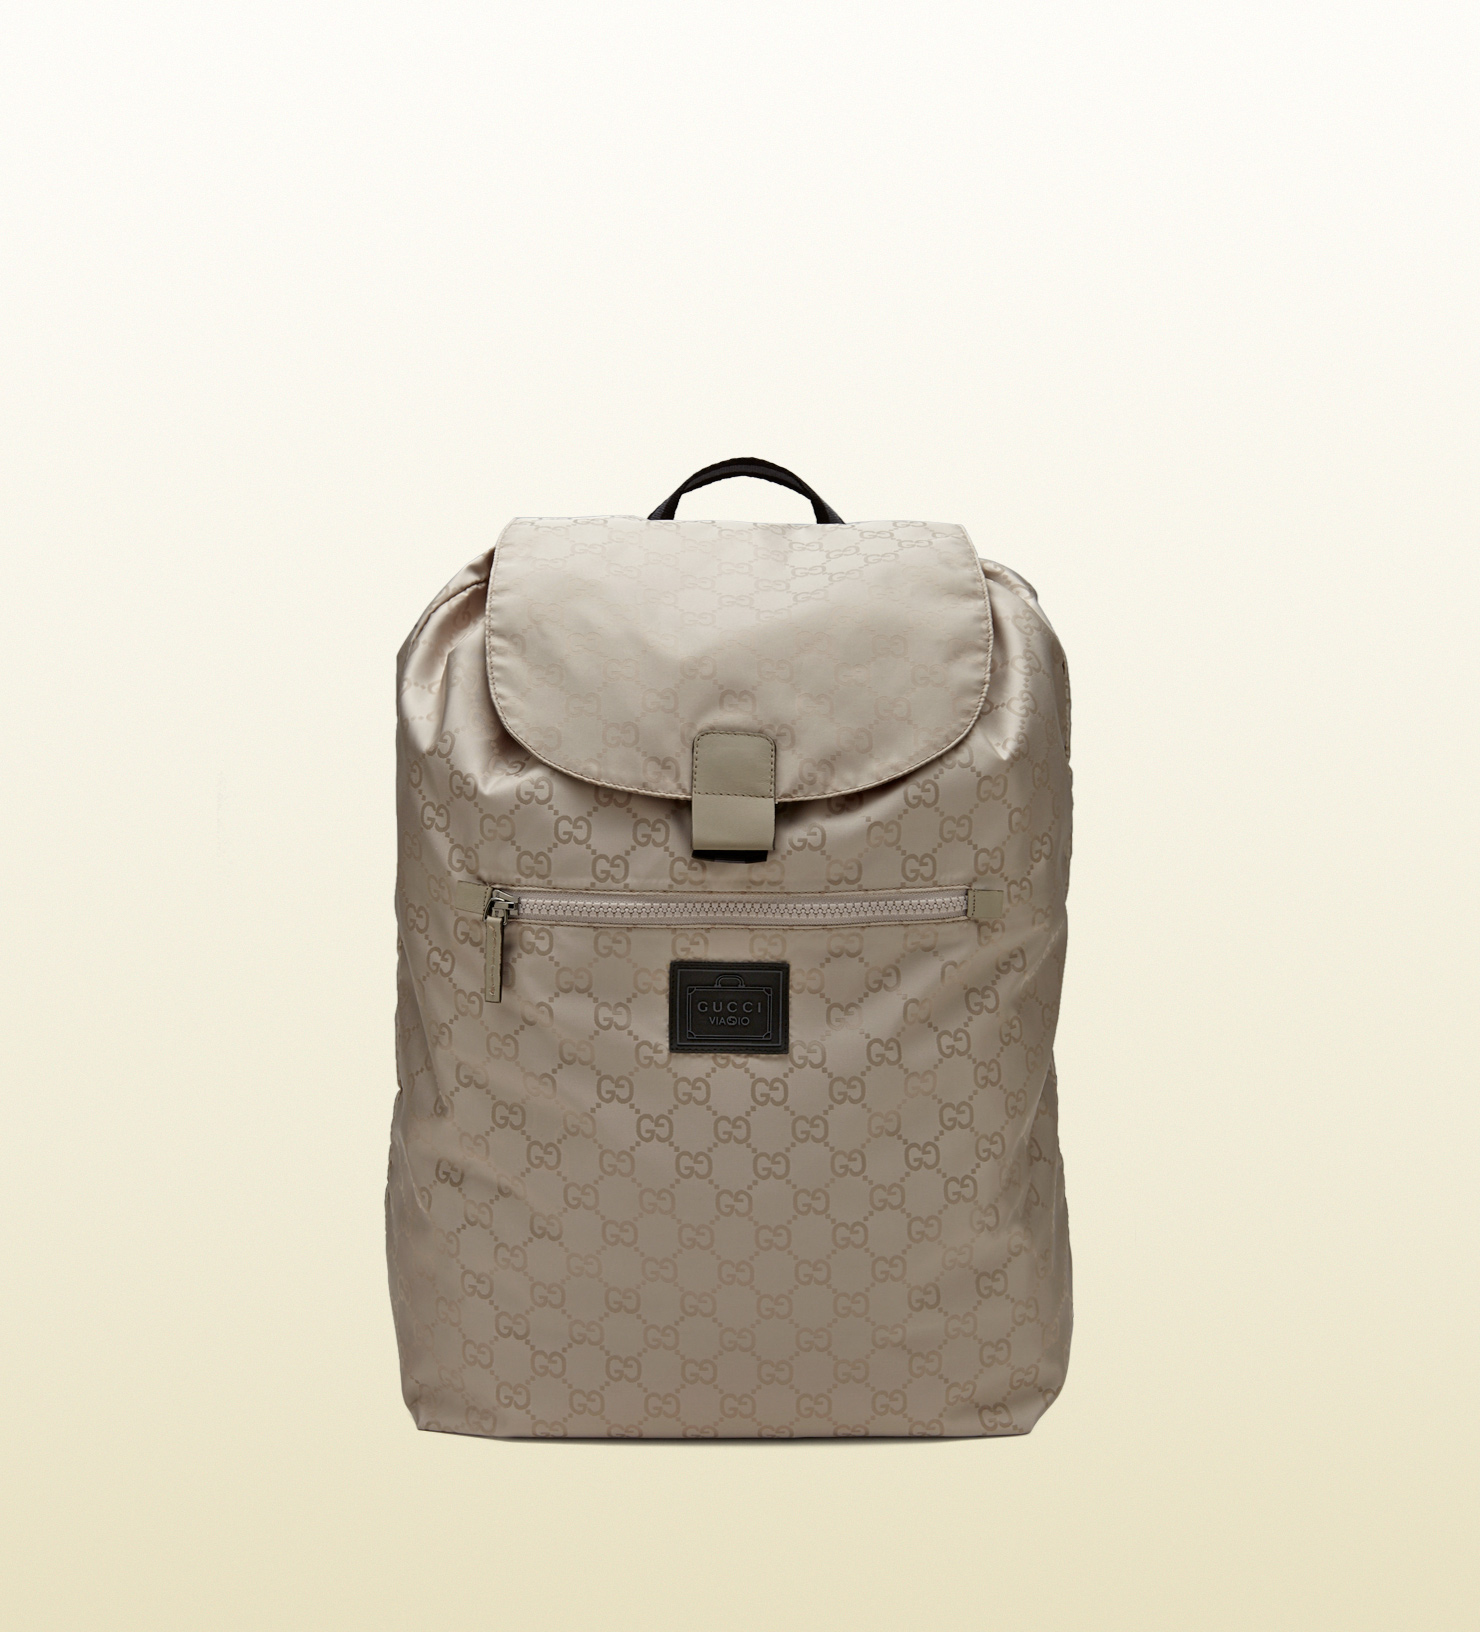 Lyst - Gucci Gg Nylon Backpack From The Viaggio Collection in Gray ... 2e9b0f77480ab